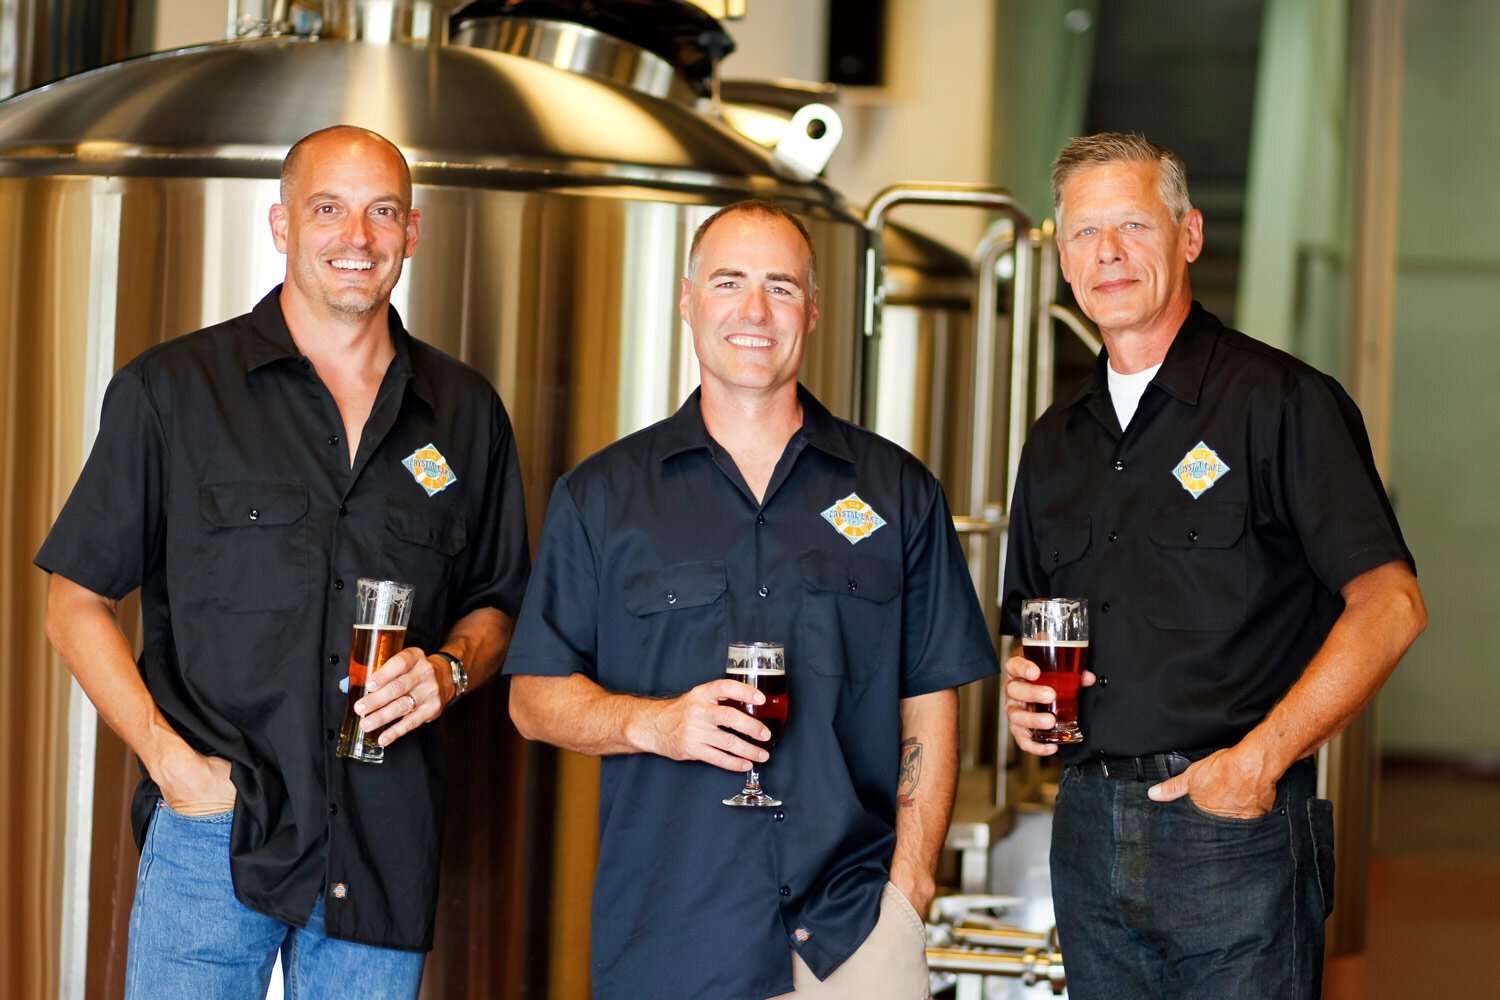 crystal-lake-brewing-marketing-promotional-photography-ruthie-hauge-brewery-madison-wi07.jpg